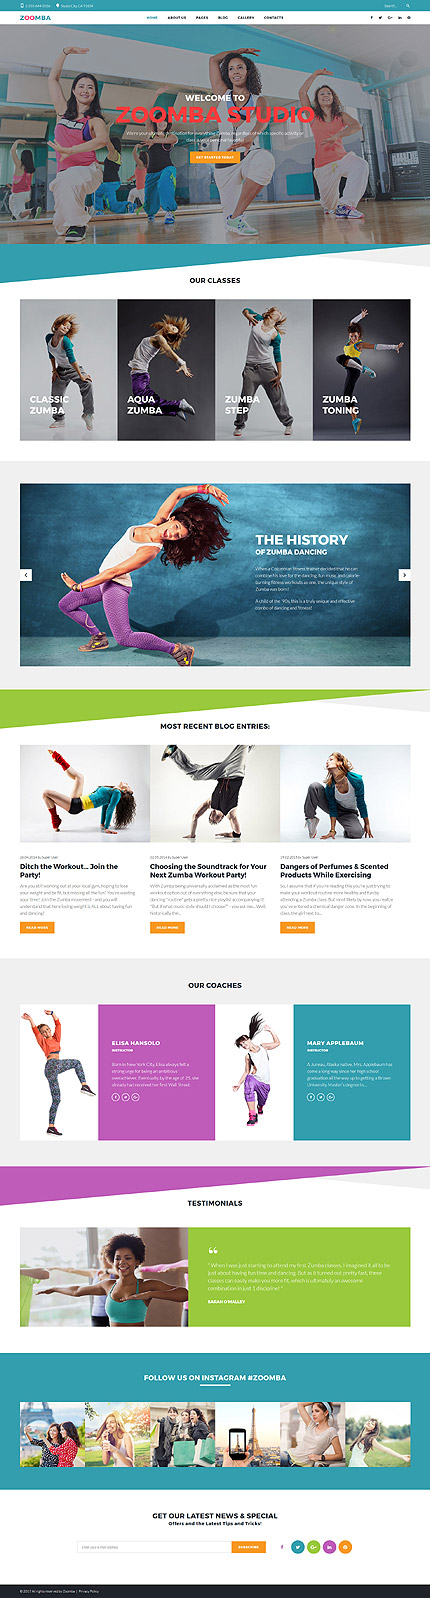 Education website inspirations at your coffee break? Browse for more Joomla #templates! // Regular price: $75 // Sources available: .PSD, .PHP #Education #Joomla